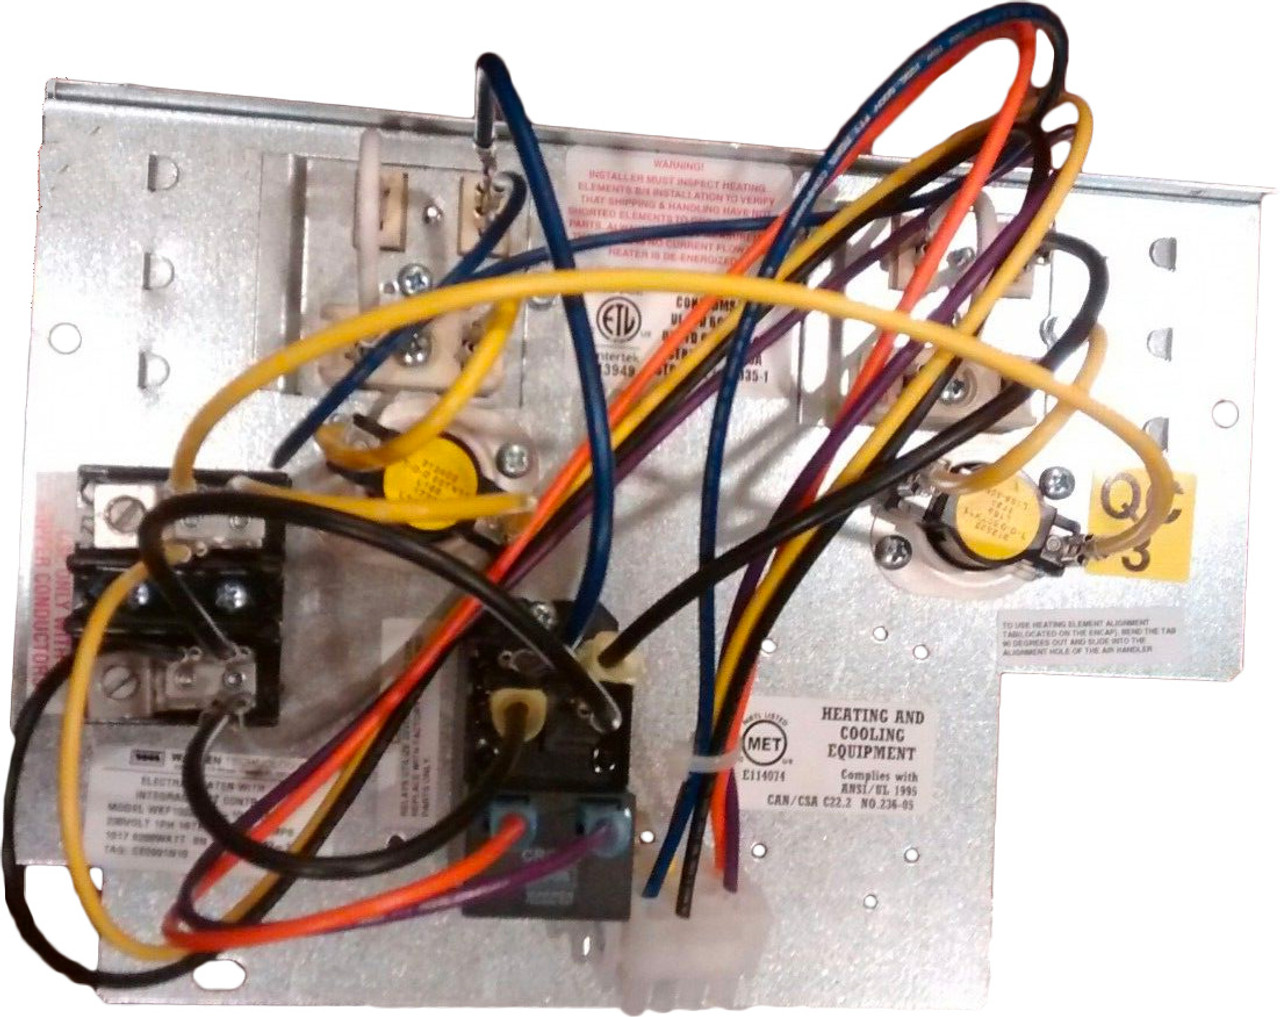 10 Kw Williams Wall Furnace Wiring Diagram Just Another 10kw Electric Heater Images Gallery